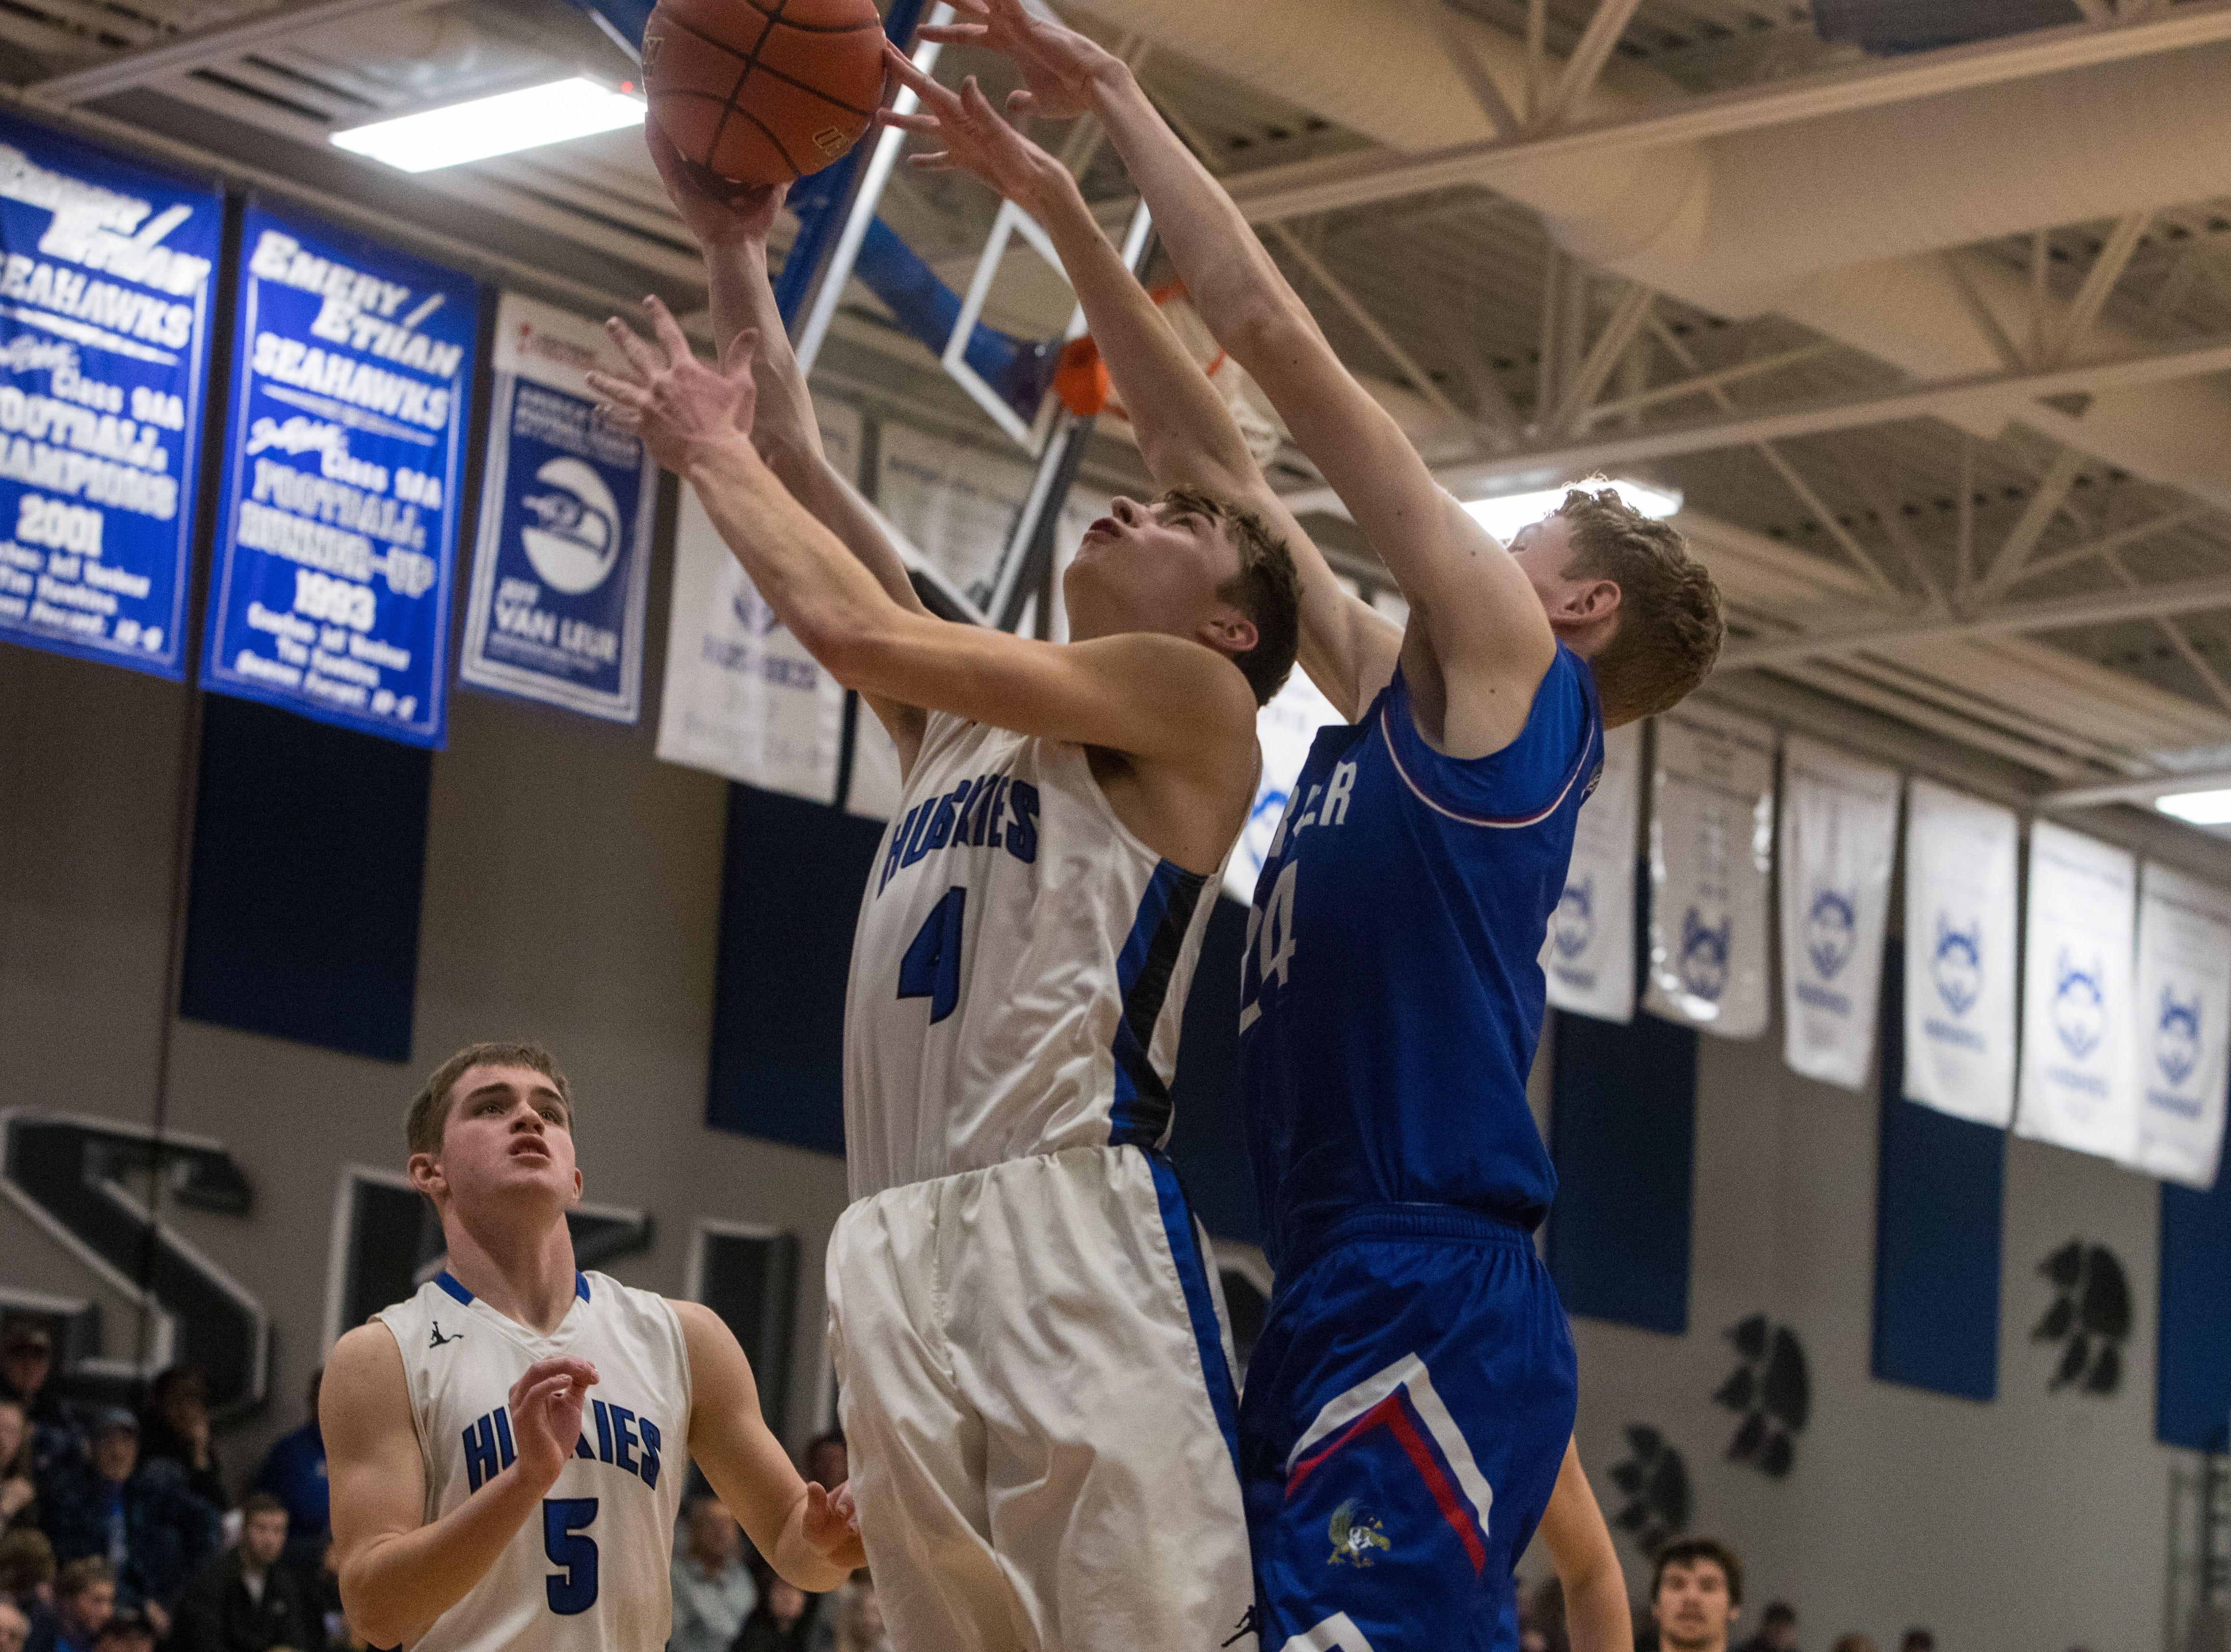 Parker's Camden Bialas (24) tries to block Bridgewater Emery's Chase Arend (4) from making a shot during a game in Emery, S.D., Feb. 15, 2019.